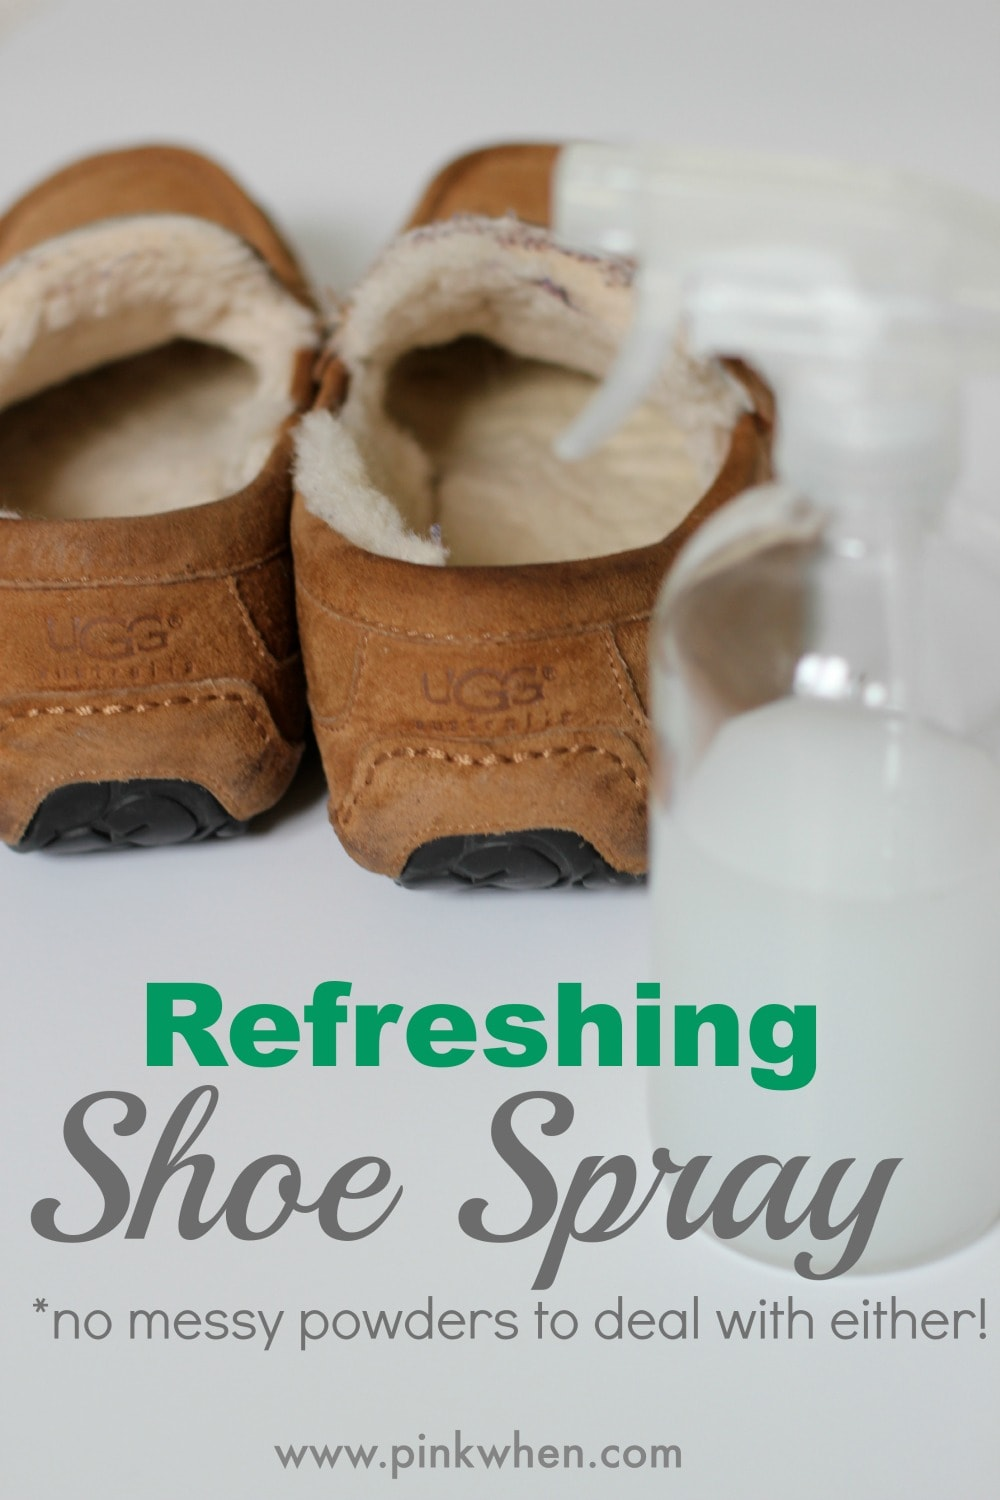 Refreshing Shoe Spray